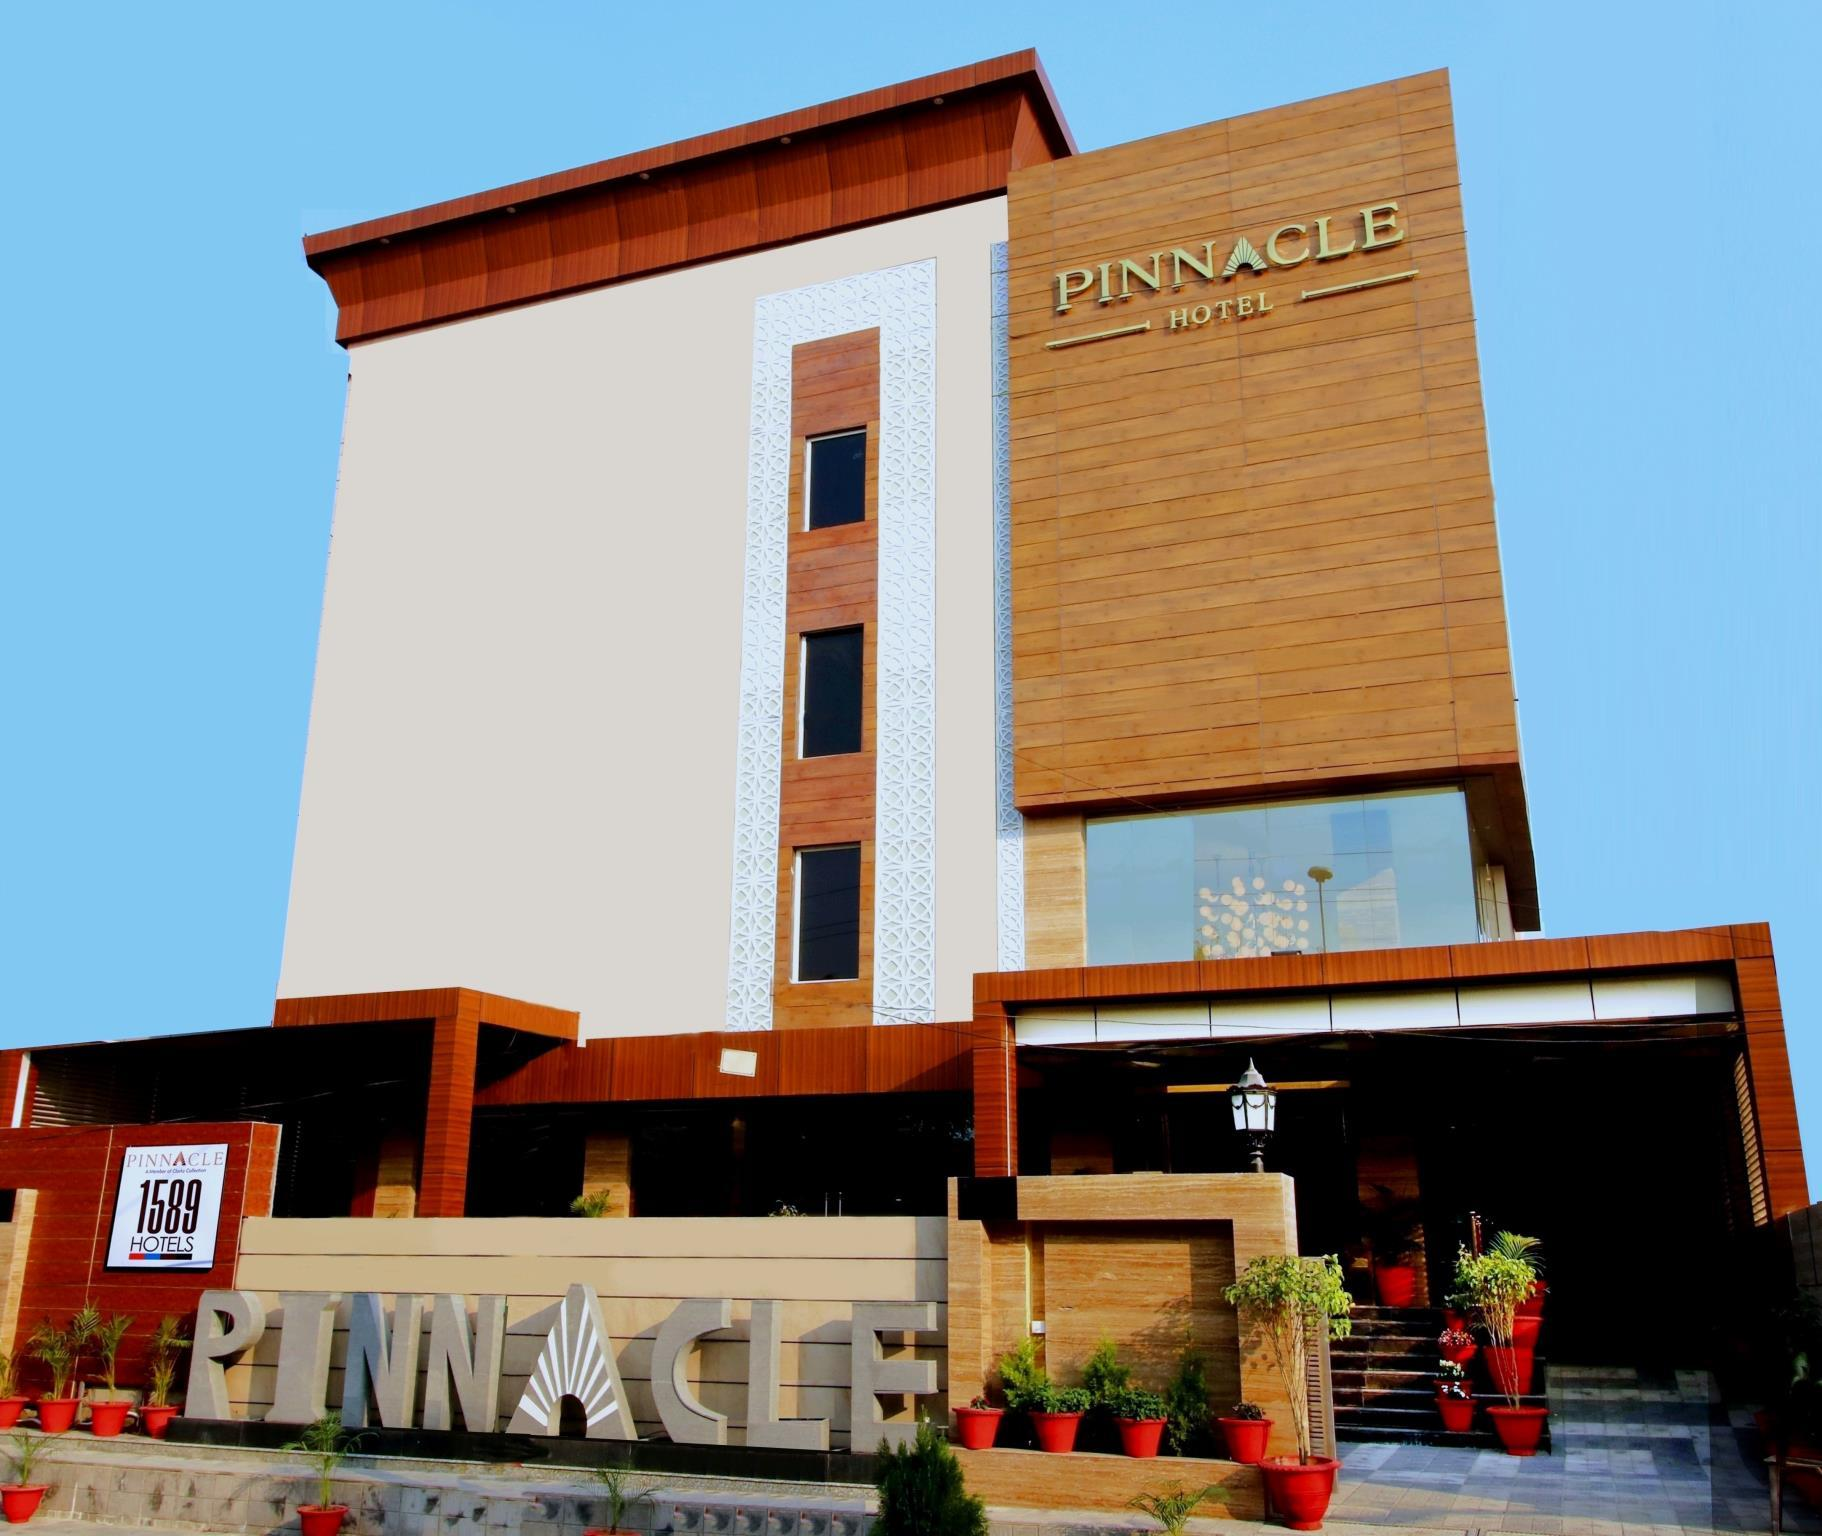 Pinnacle by 1589 Hotels, Lucknow